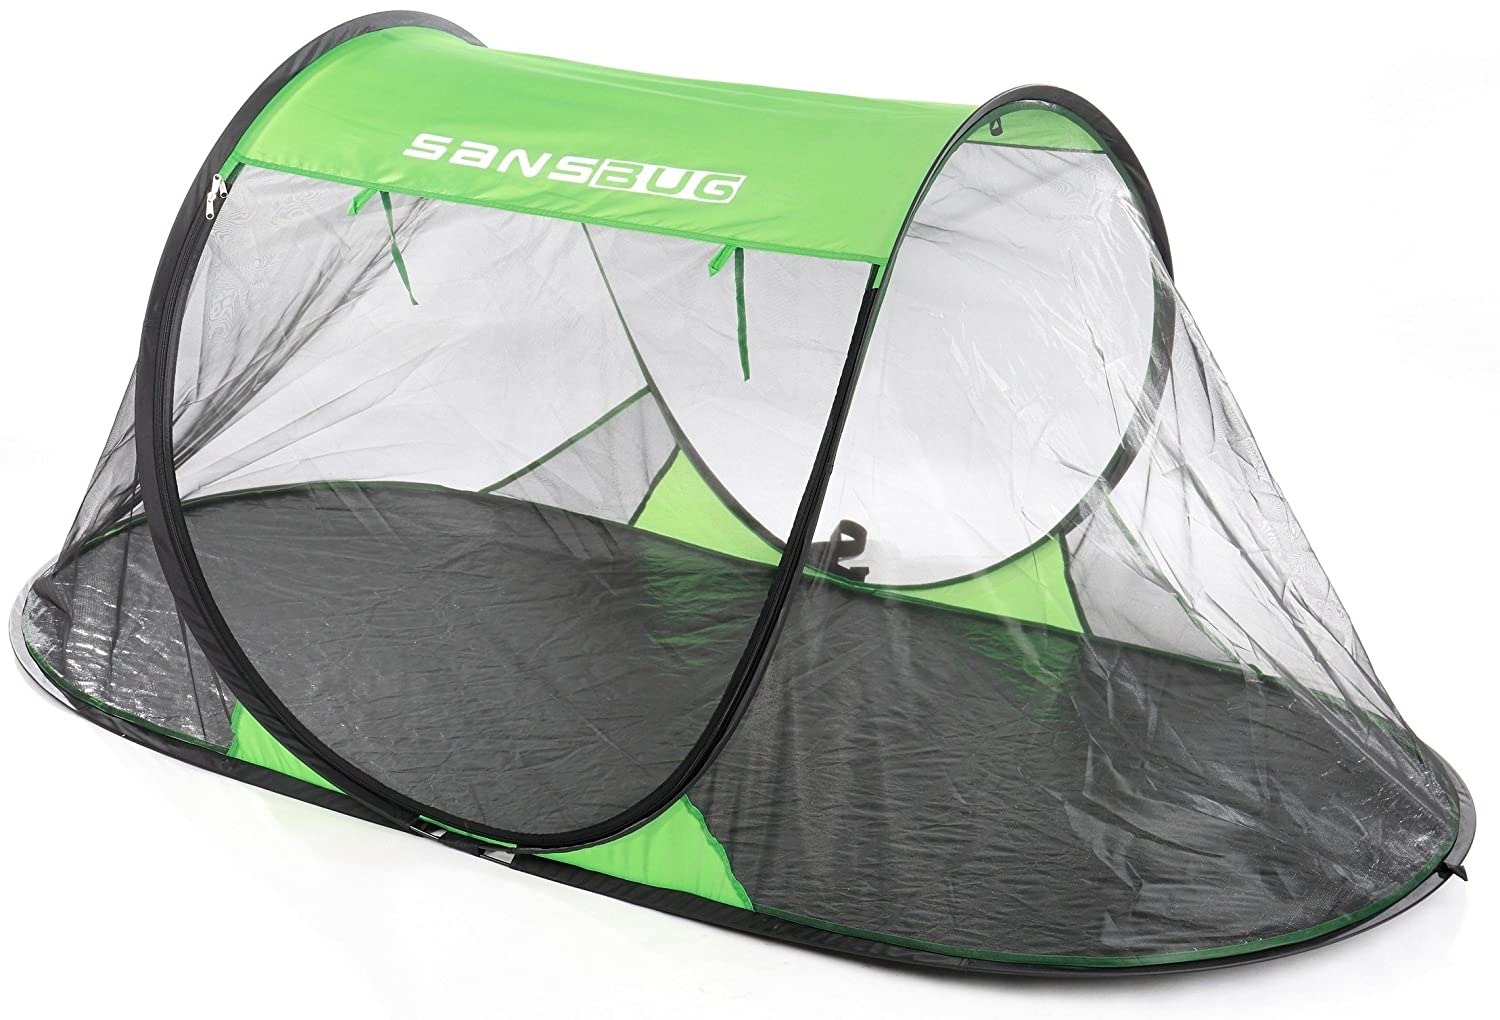 Amazon.com SansBug 1-Person Free-Standing Pop-Up Mosquito-Net (Tarp Floor) Sports u0026 Outdoors  sc 1 st  Amazon.com & Amazon.com: SansBug 1-Person Free-Standing Pop-Up Mosquito-Net ...